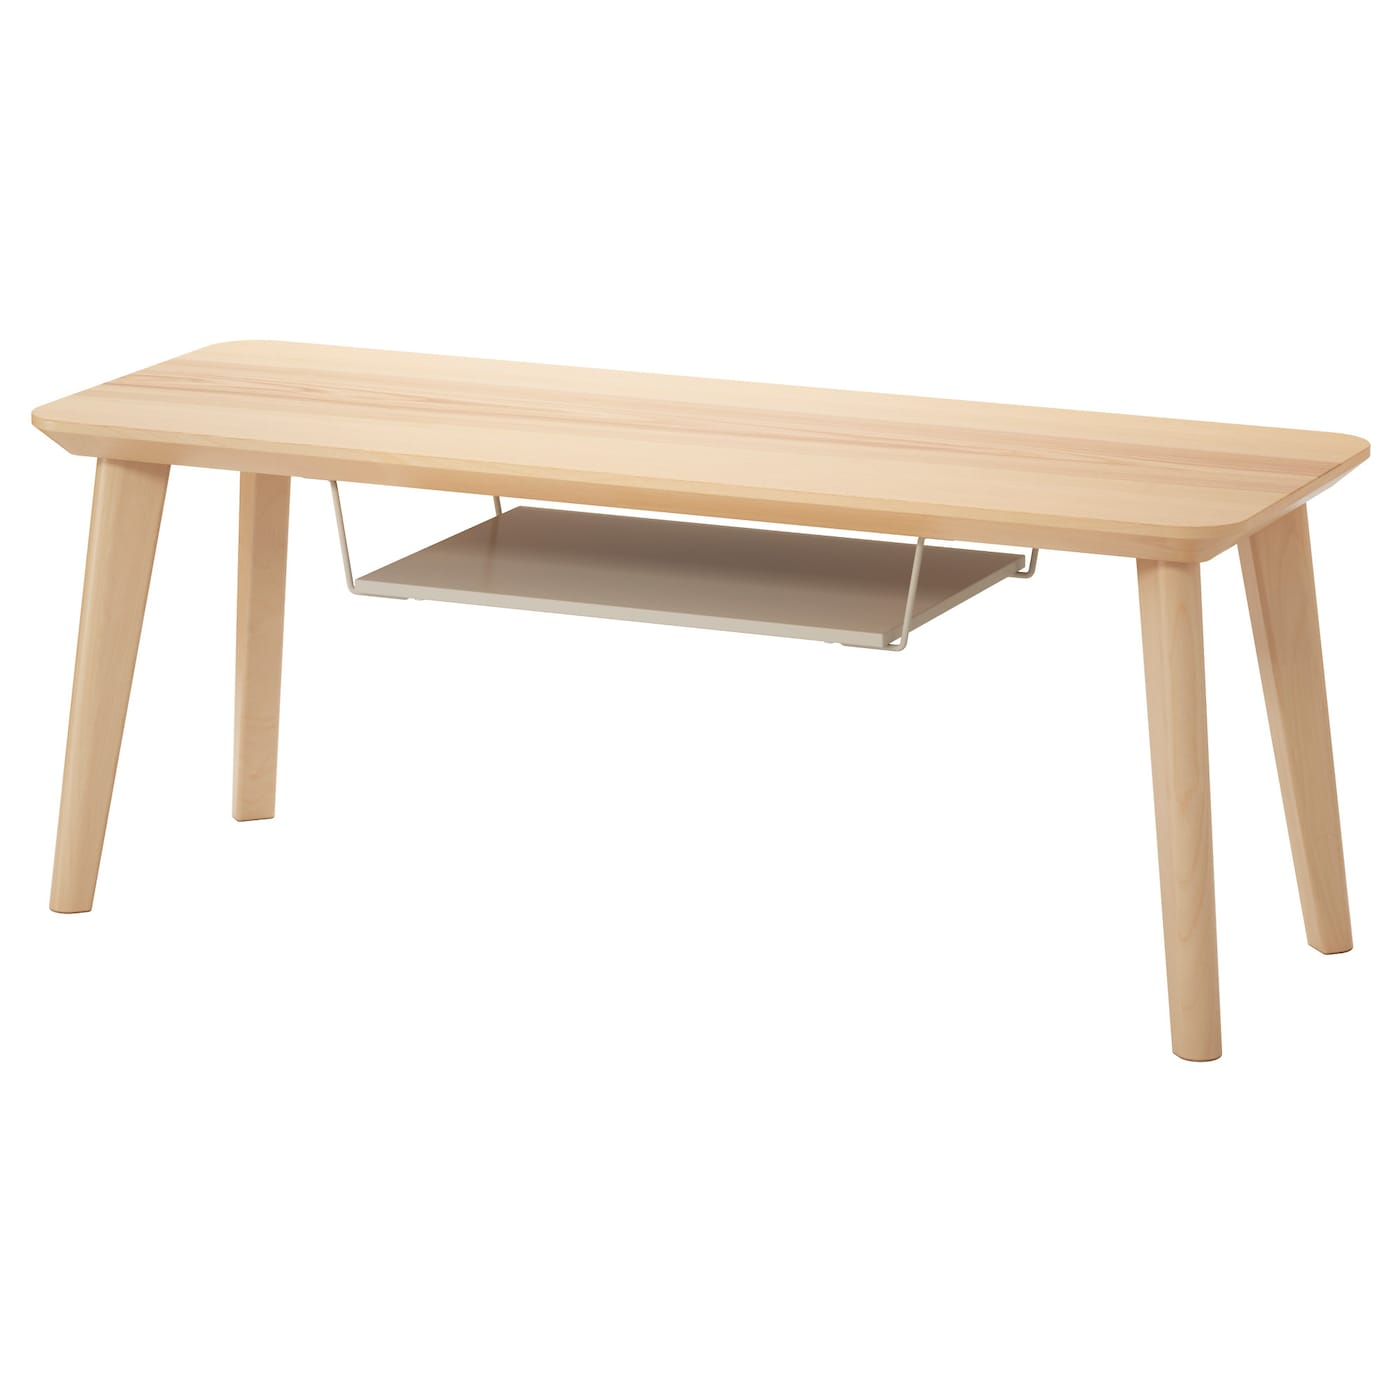 Lisabo tv bench ash veneer 114x40 cm ikea for Table tv bois